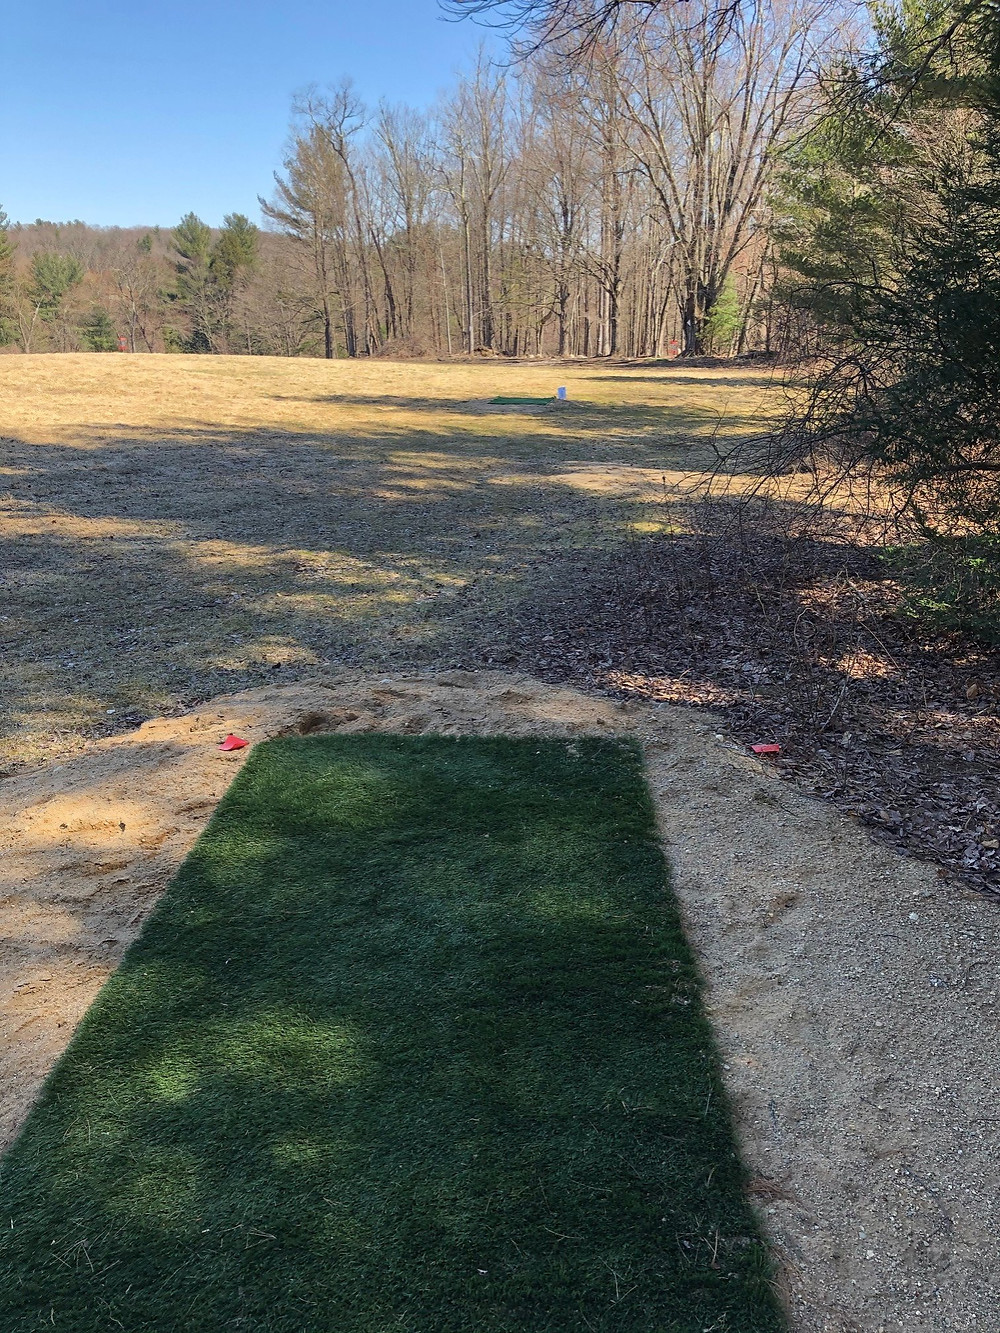 Hole 15 red tee, with green tee up the fairway